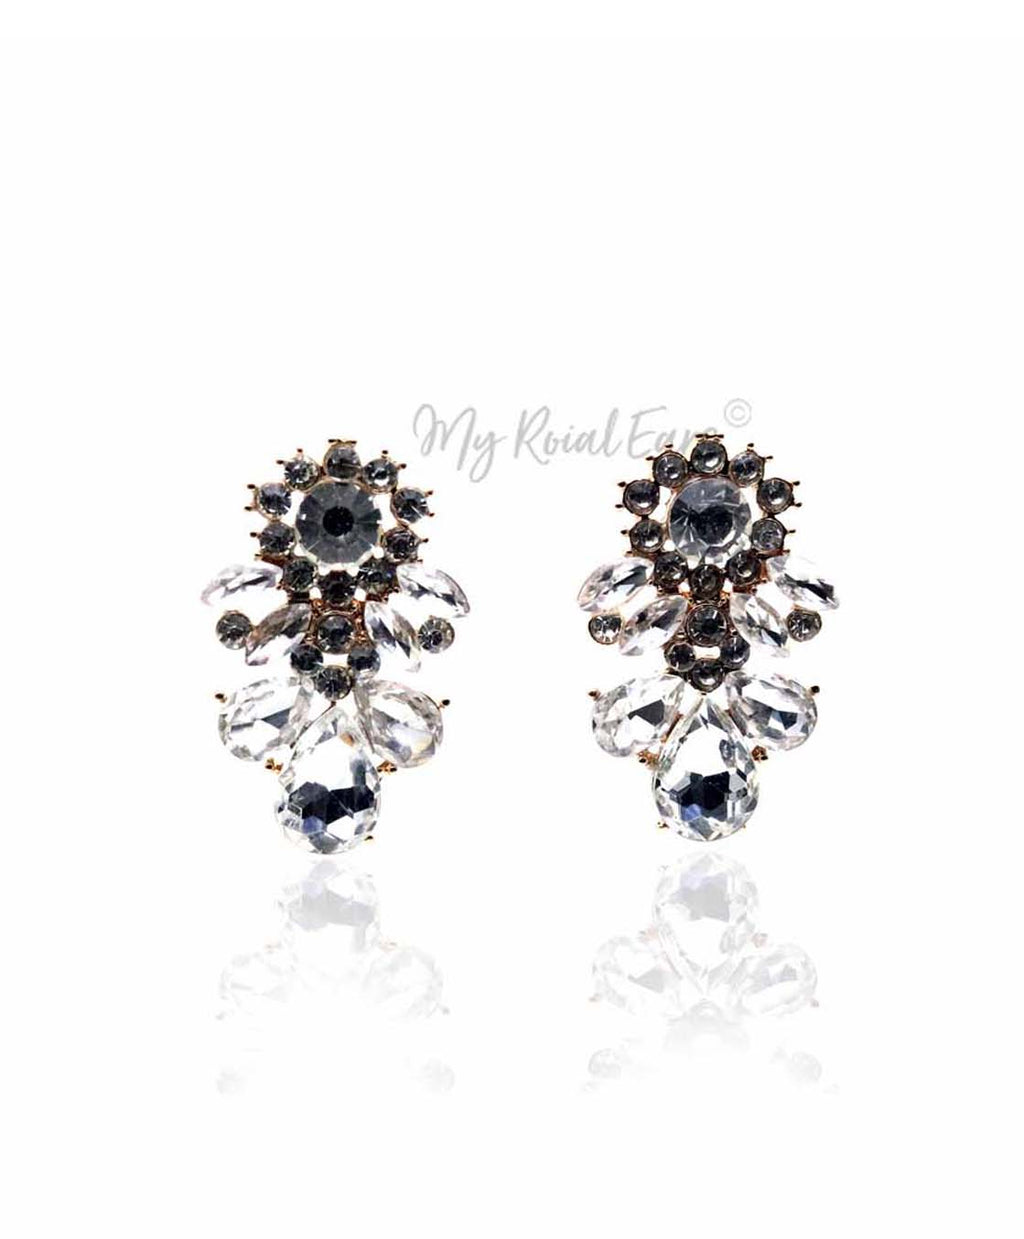 Q.SAVANNAH Stud-gold plated glass crystal bridal stud earrings - My Roial Ears LTD